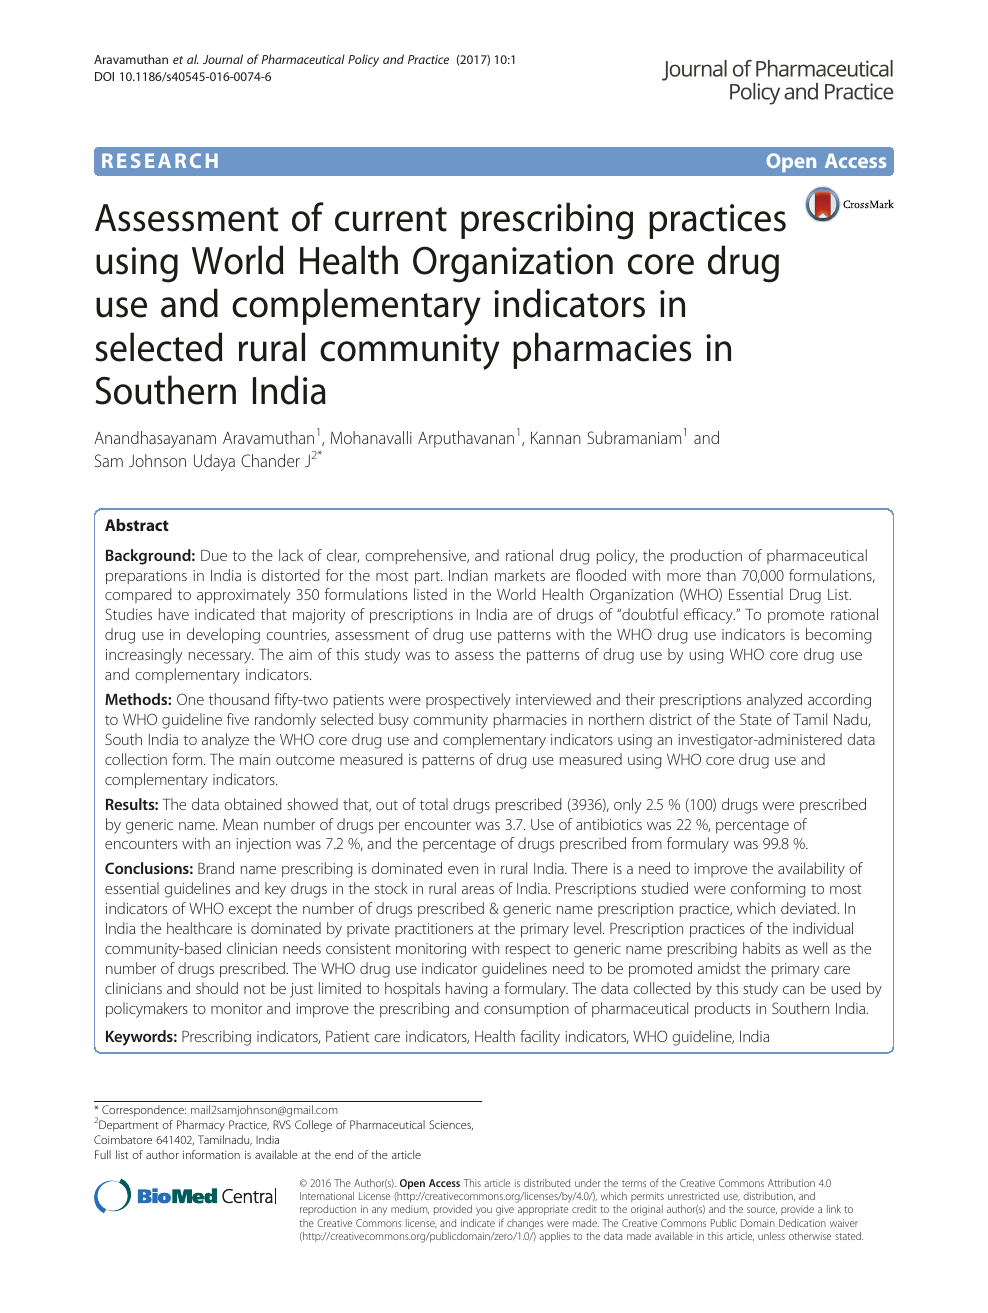 Assessment of current prescribing practices using World